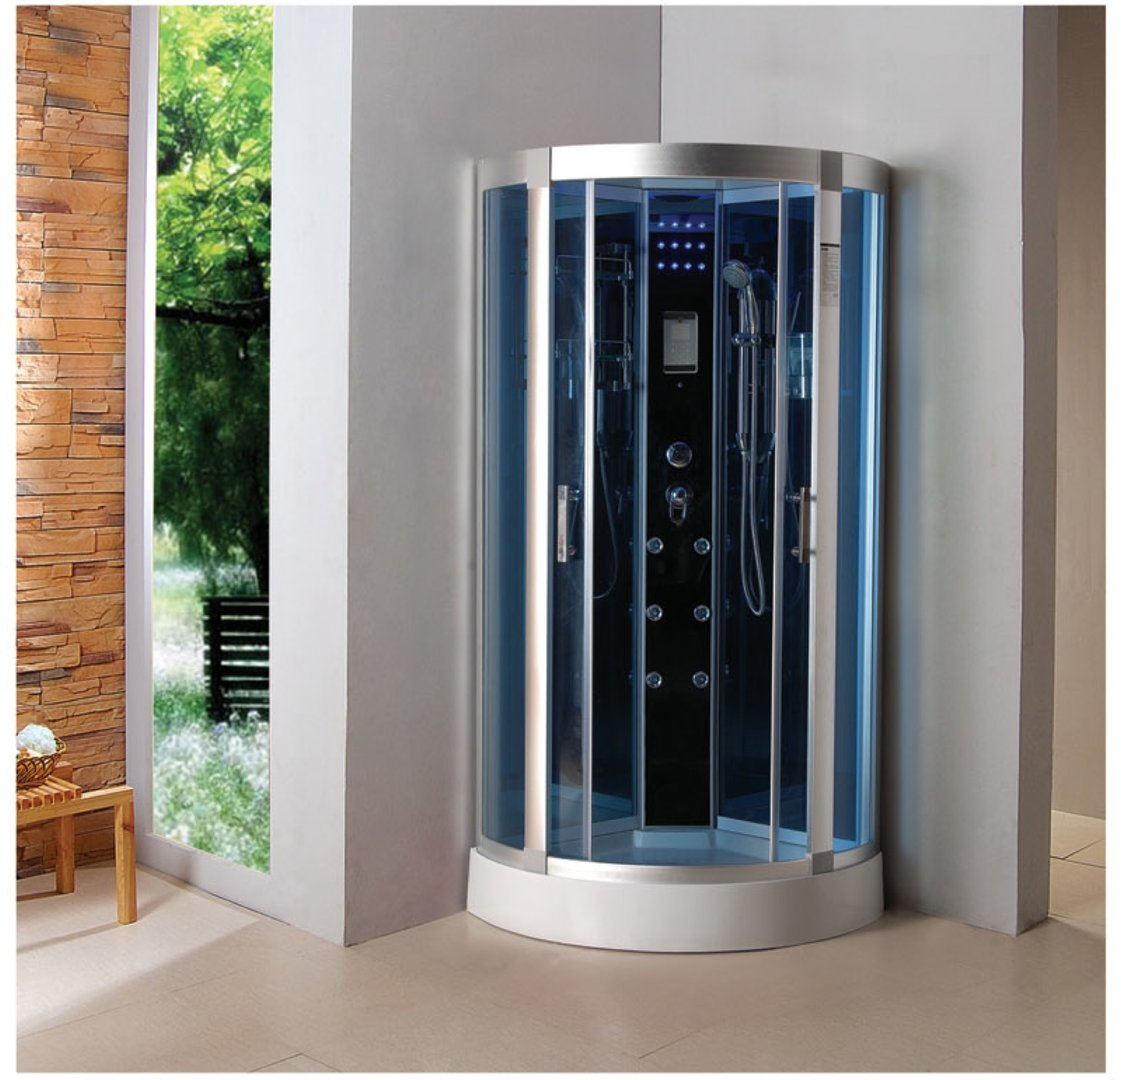 Luxury Kokss 9040 Shower enclosure 36'' x 36'' Multi function hand shower overhead rain, 3 body massage jets and LED Lights with touch screen computer by bath masters (Image #5)